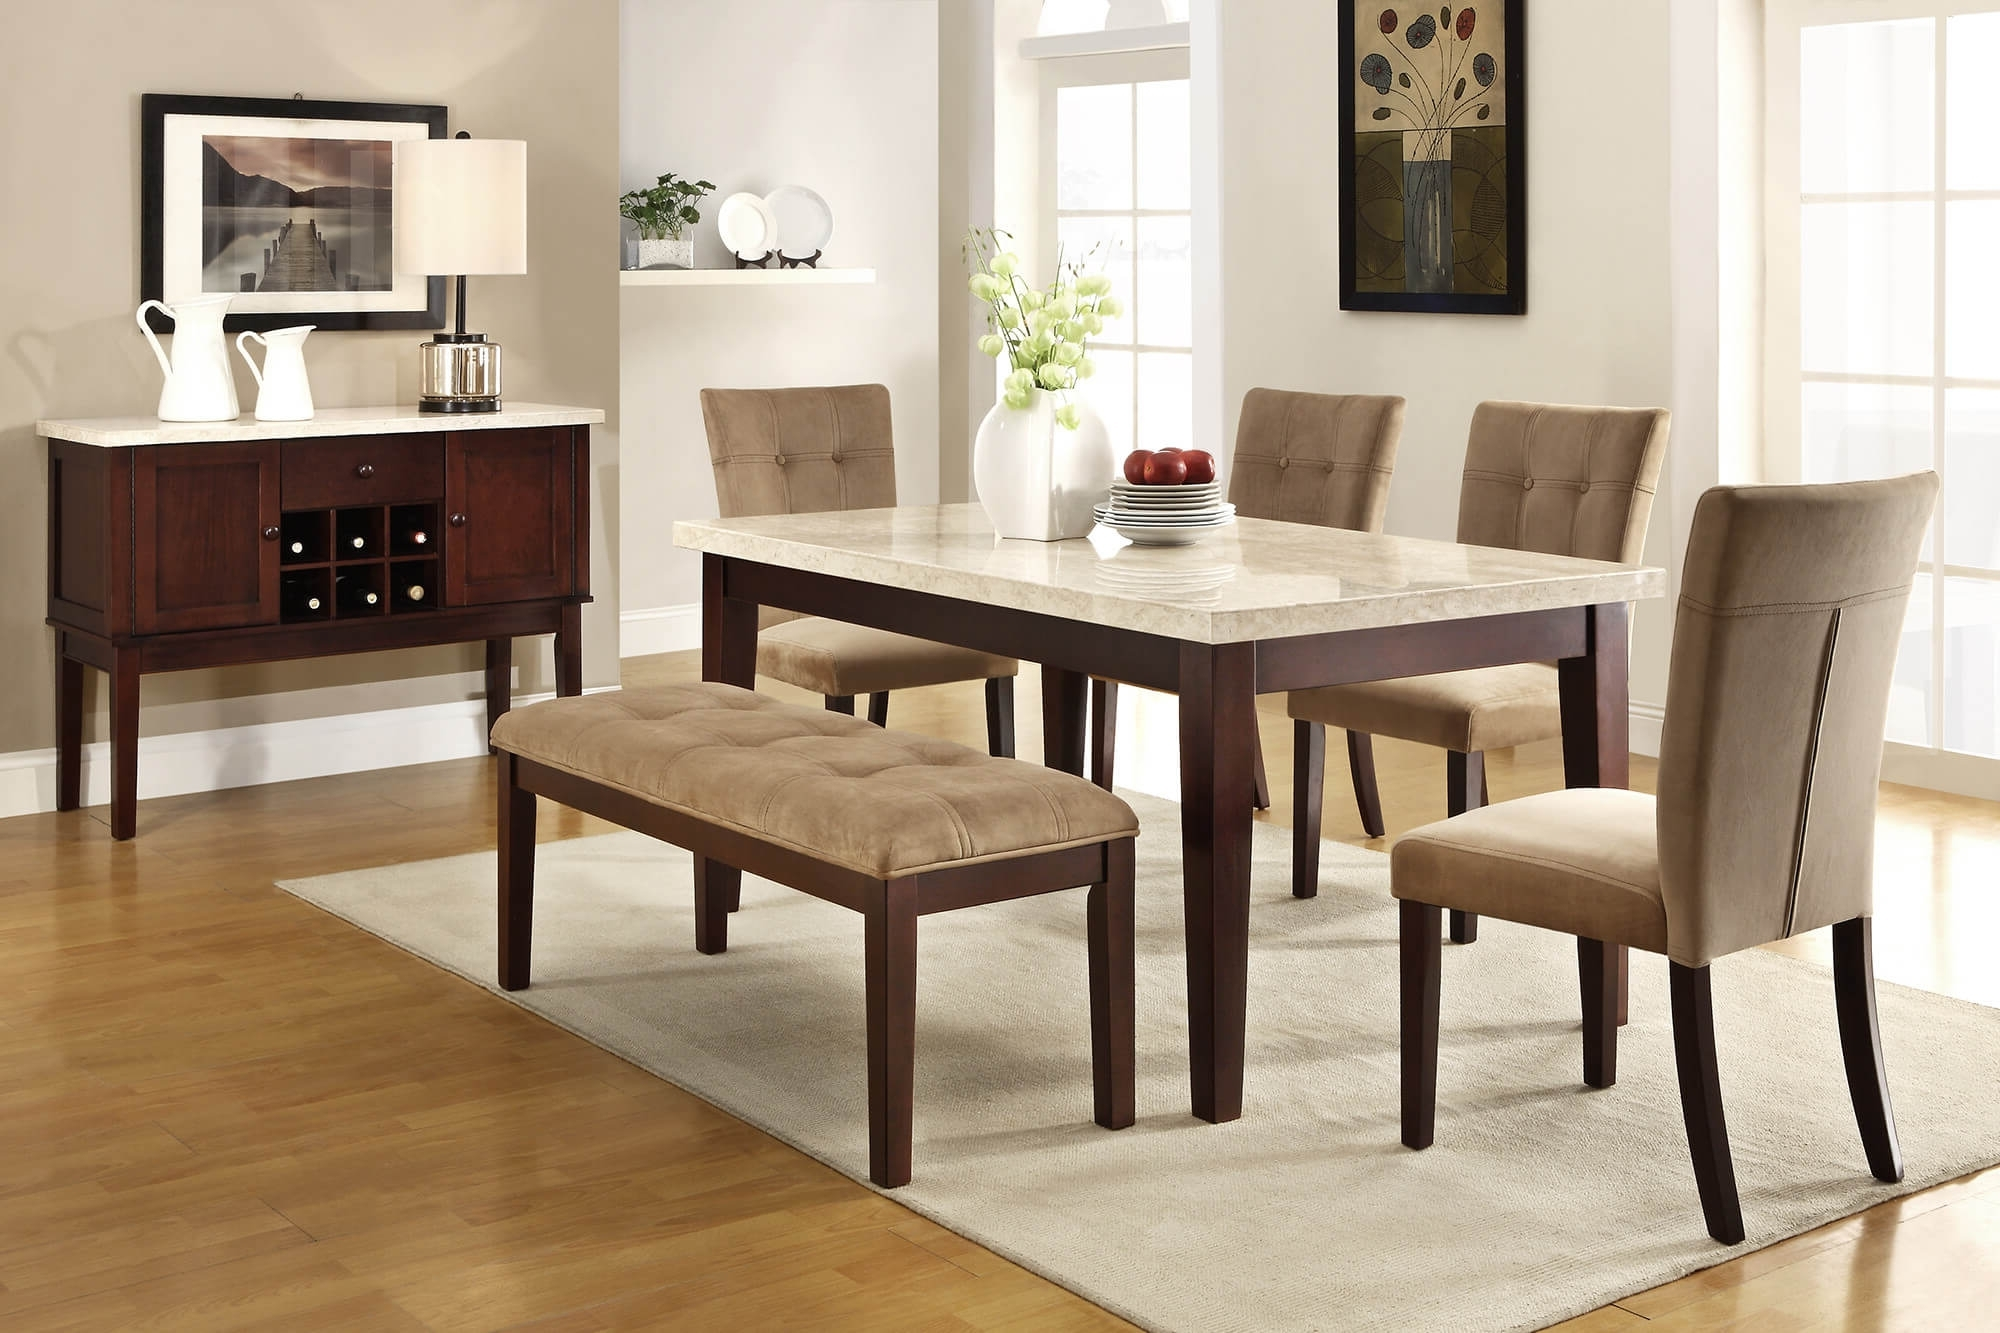 26 Dining Room Sets (Big And Small) With Bench Seating (2018) With Regard To Well Known Cheap Dining Room Chairs (View 2 of 25)